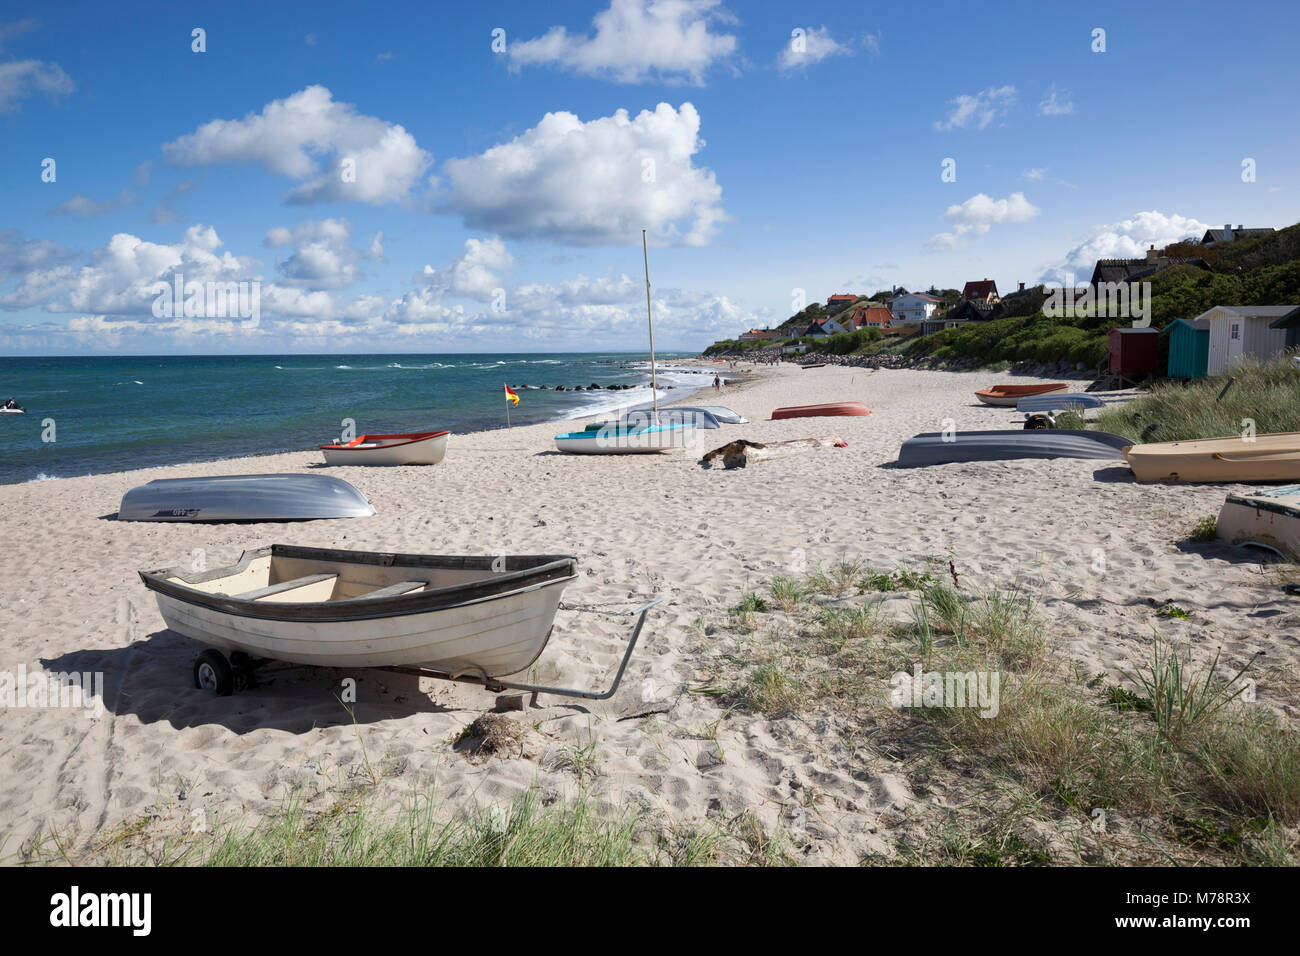 Boats on white sand beach and town behind, Tisvilde, Kattegat Coast, Zealand, Denmark, Scandinavia, Europe - Stock Image